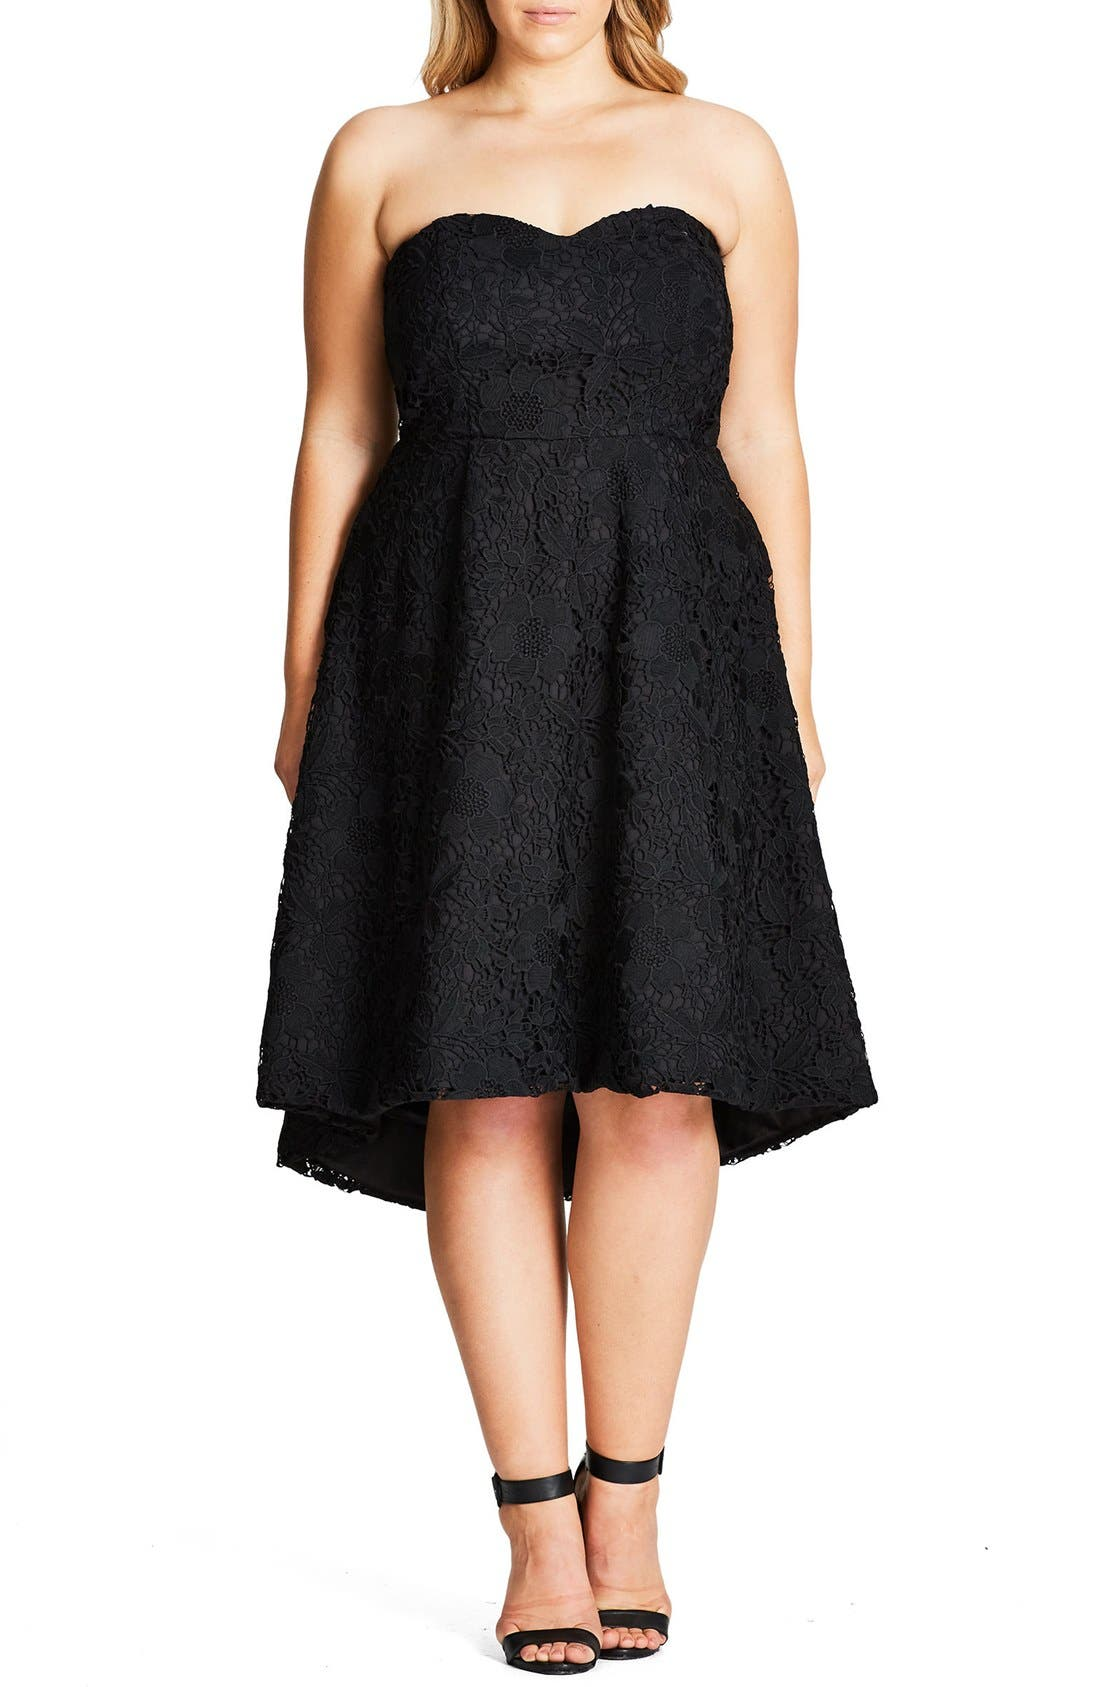 Alternate Image 1 Selected - City Chic Clara Lace Dress (Plus Size)